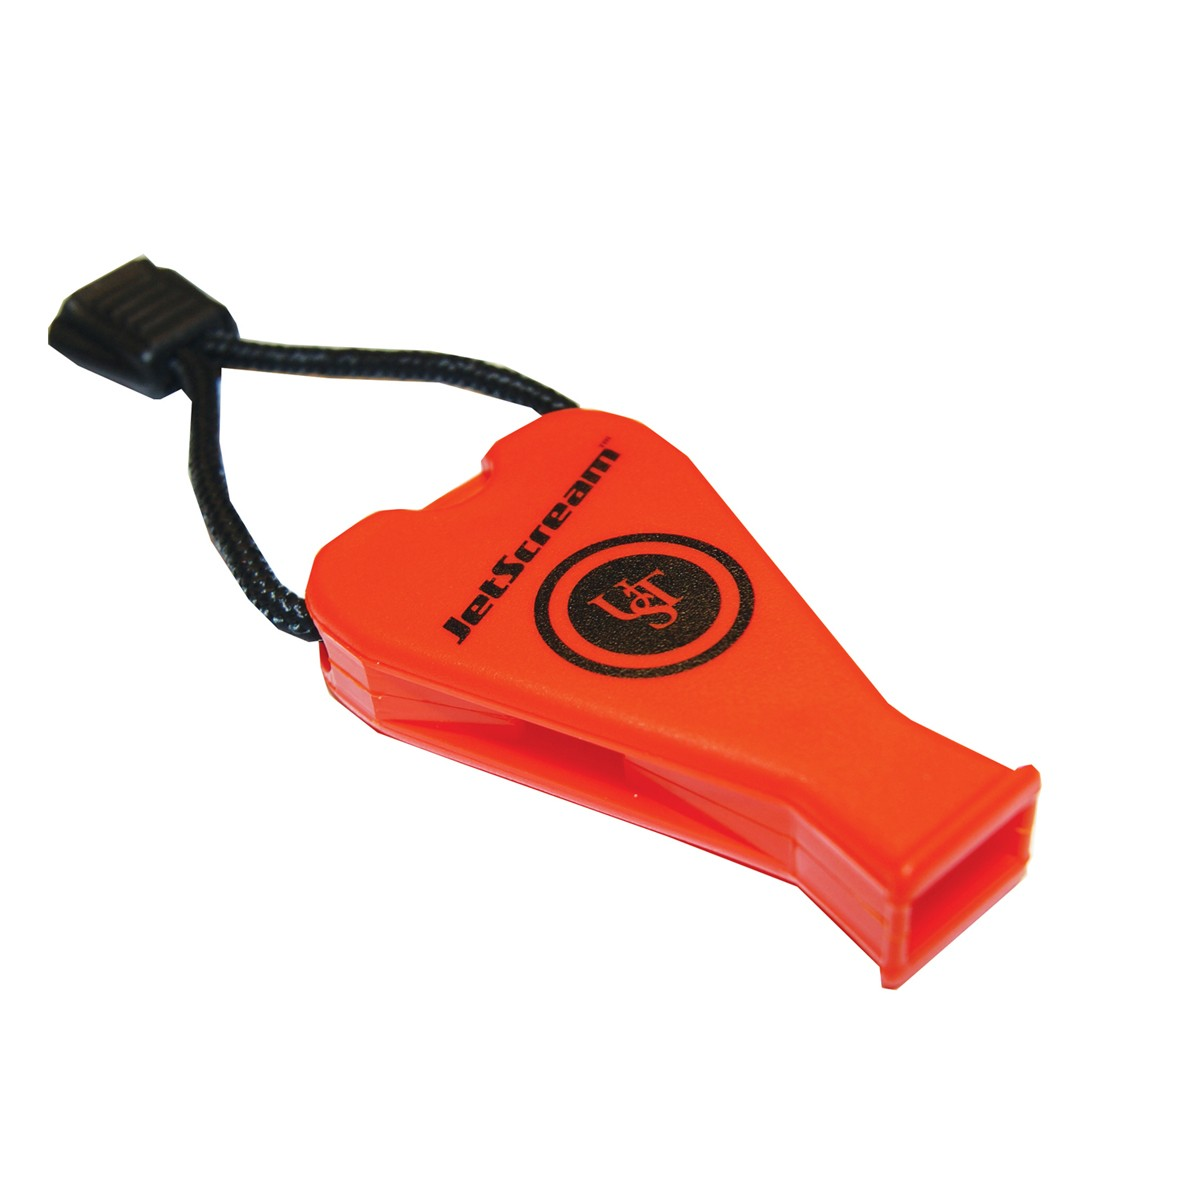 Jetscream Whistle, Orange